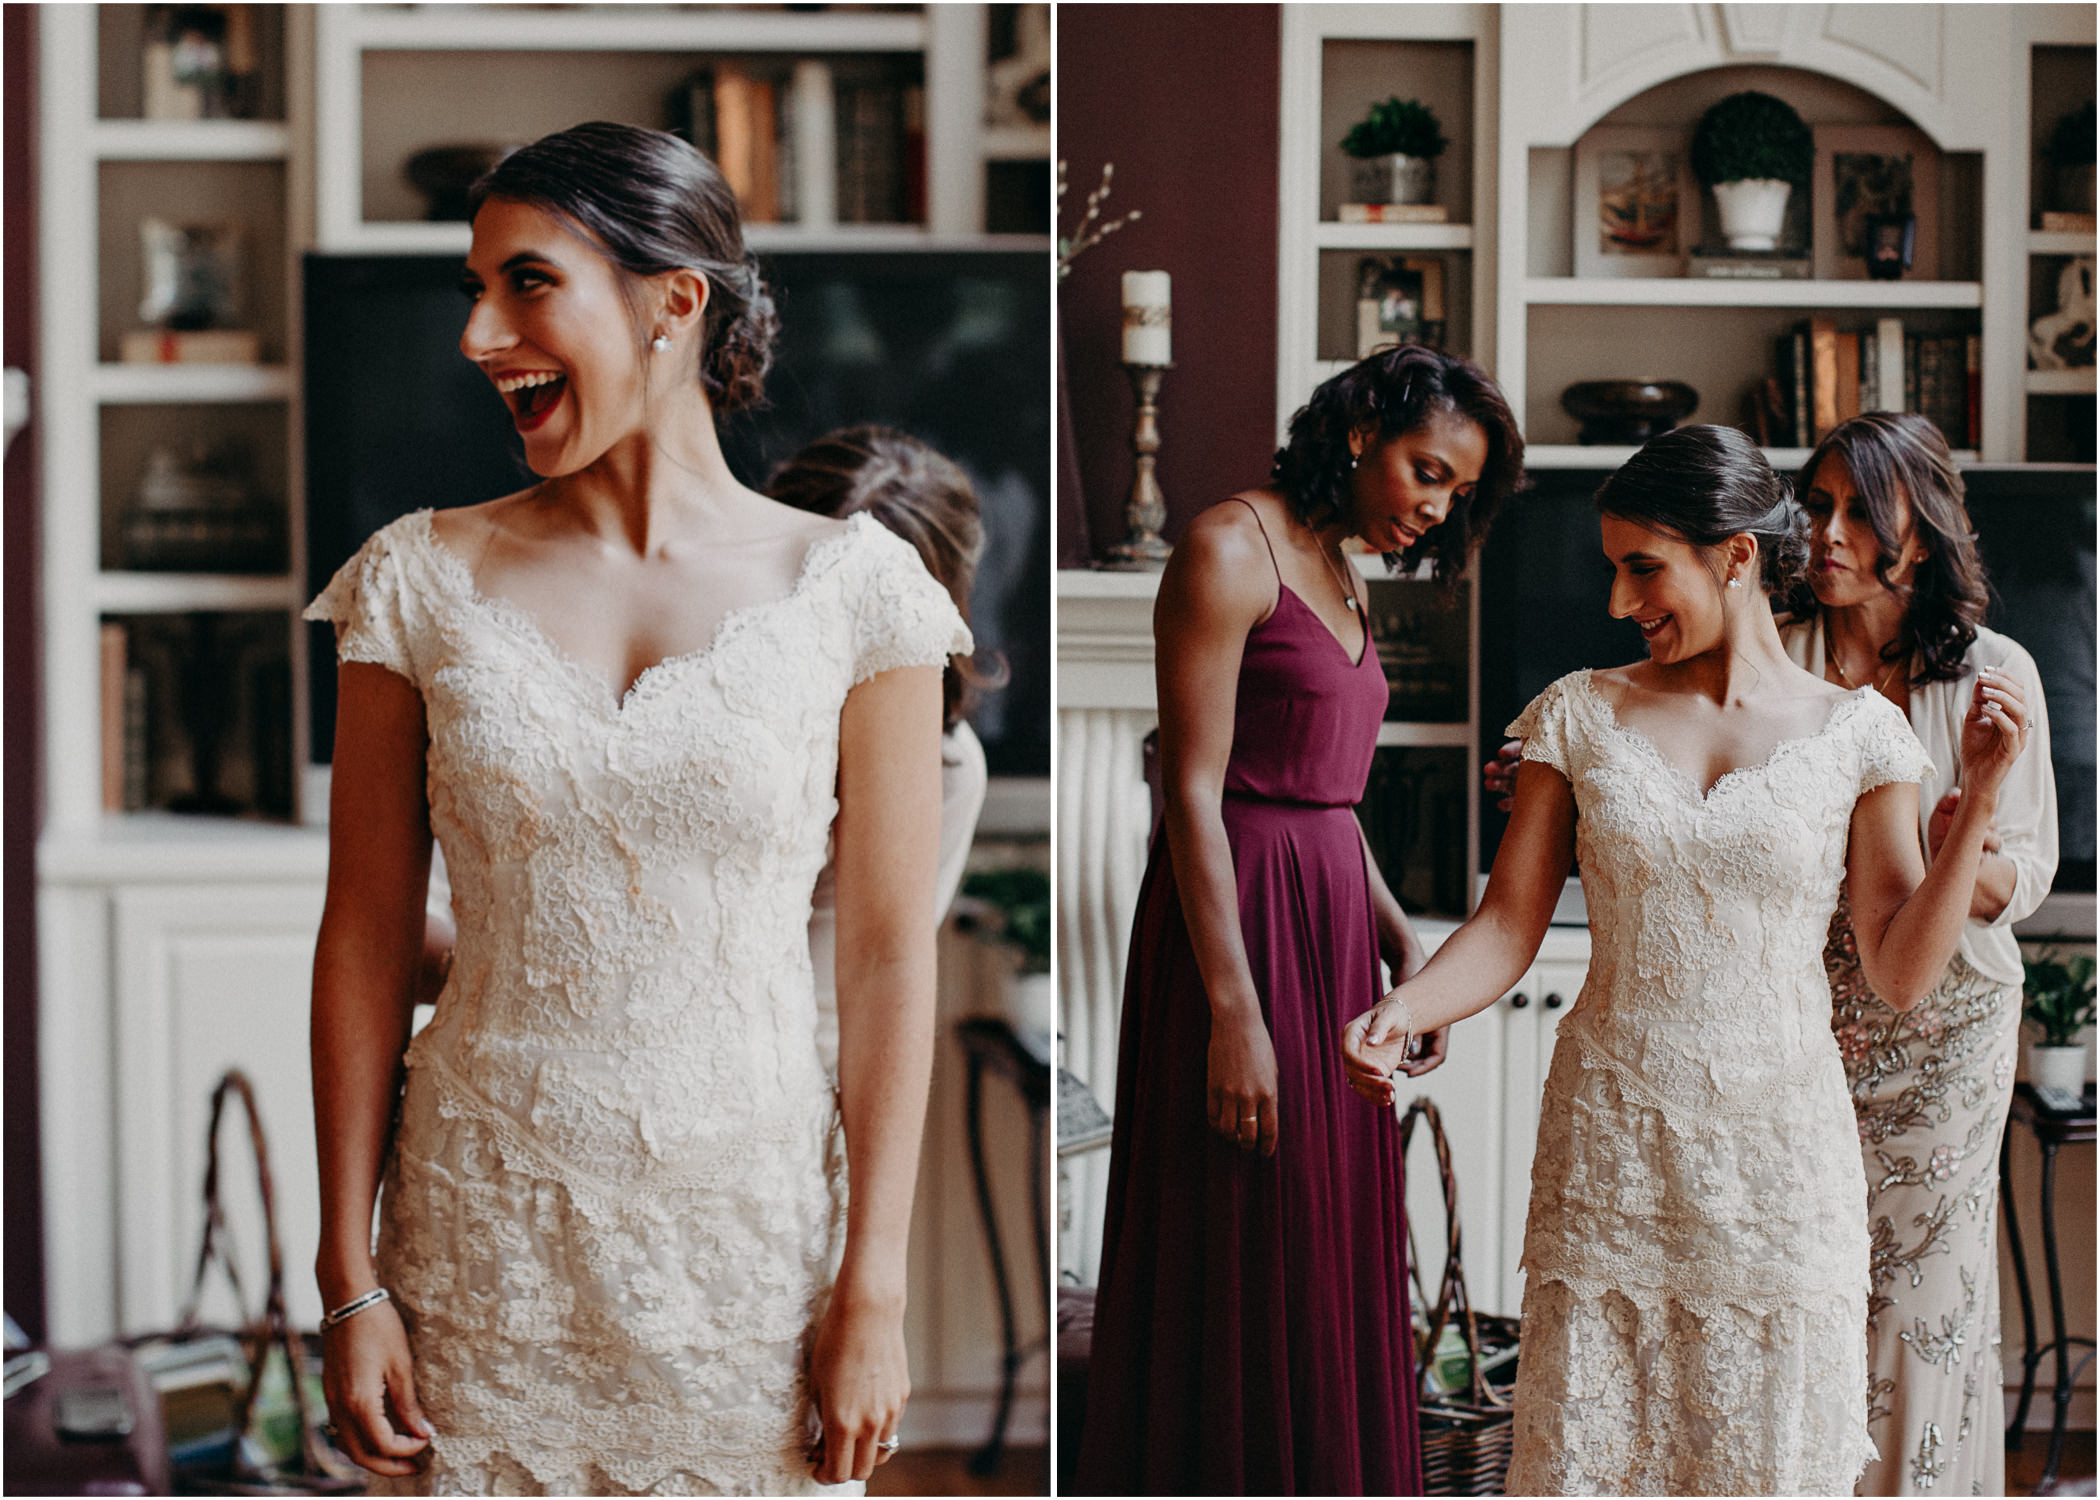 22 Bride getting ready pictures before ceremony- Weding day, Atlanta-Ga Photographer .jpg